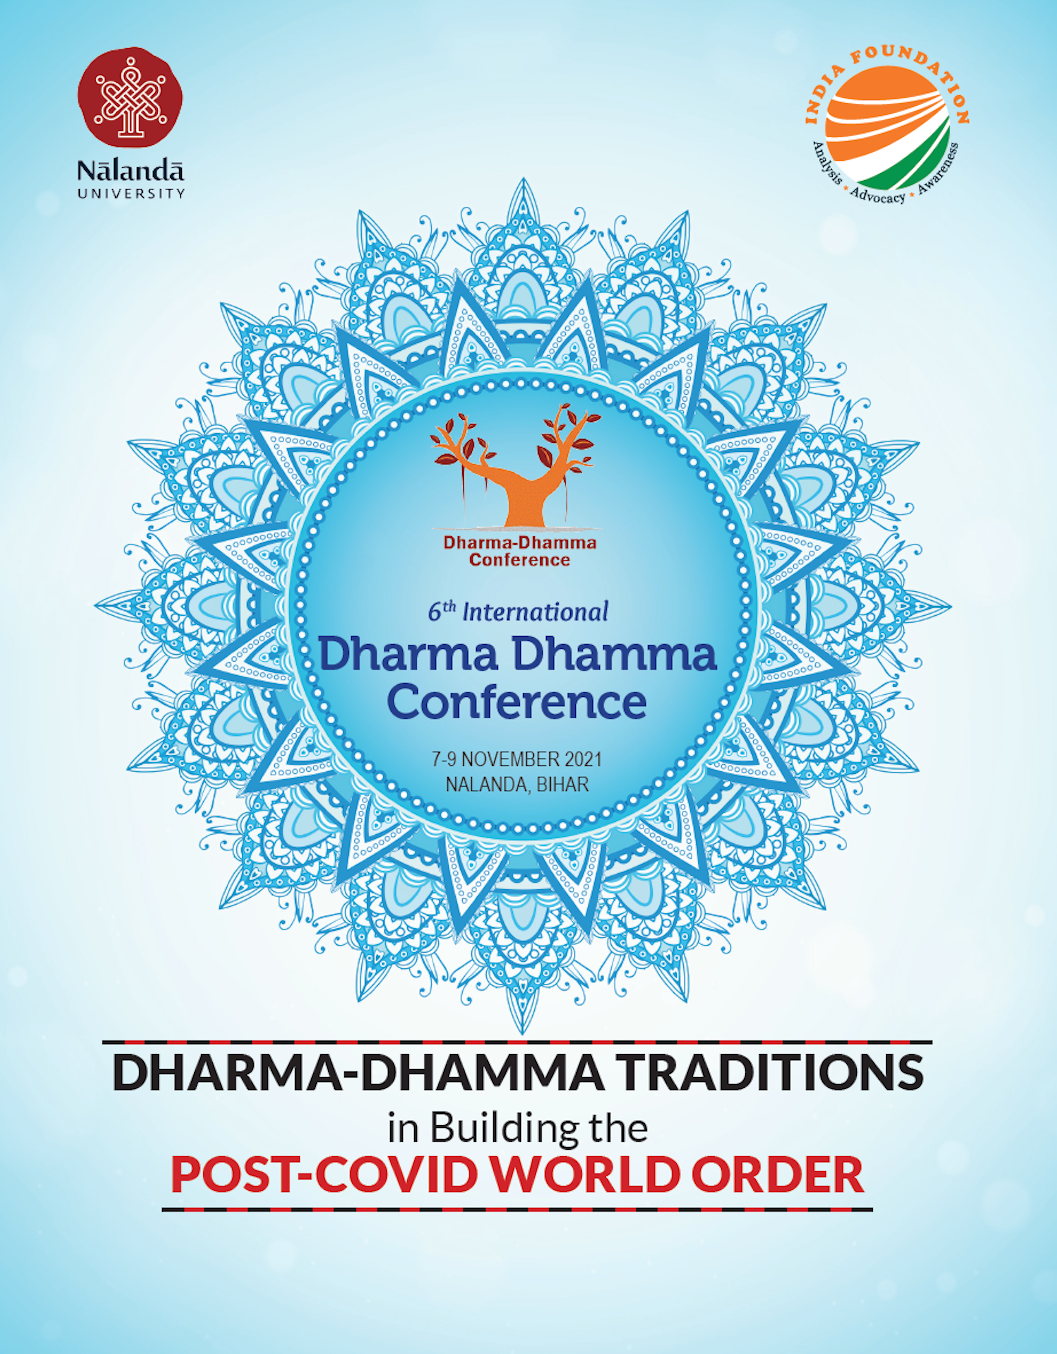 6th Dharma Dhamma Conference 2021